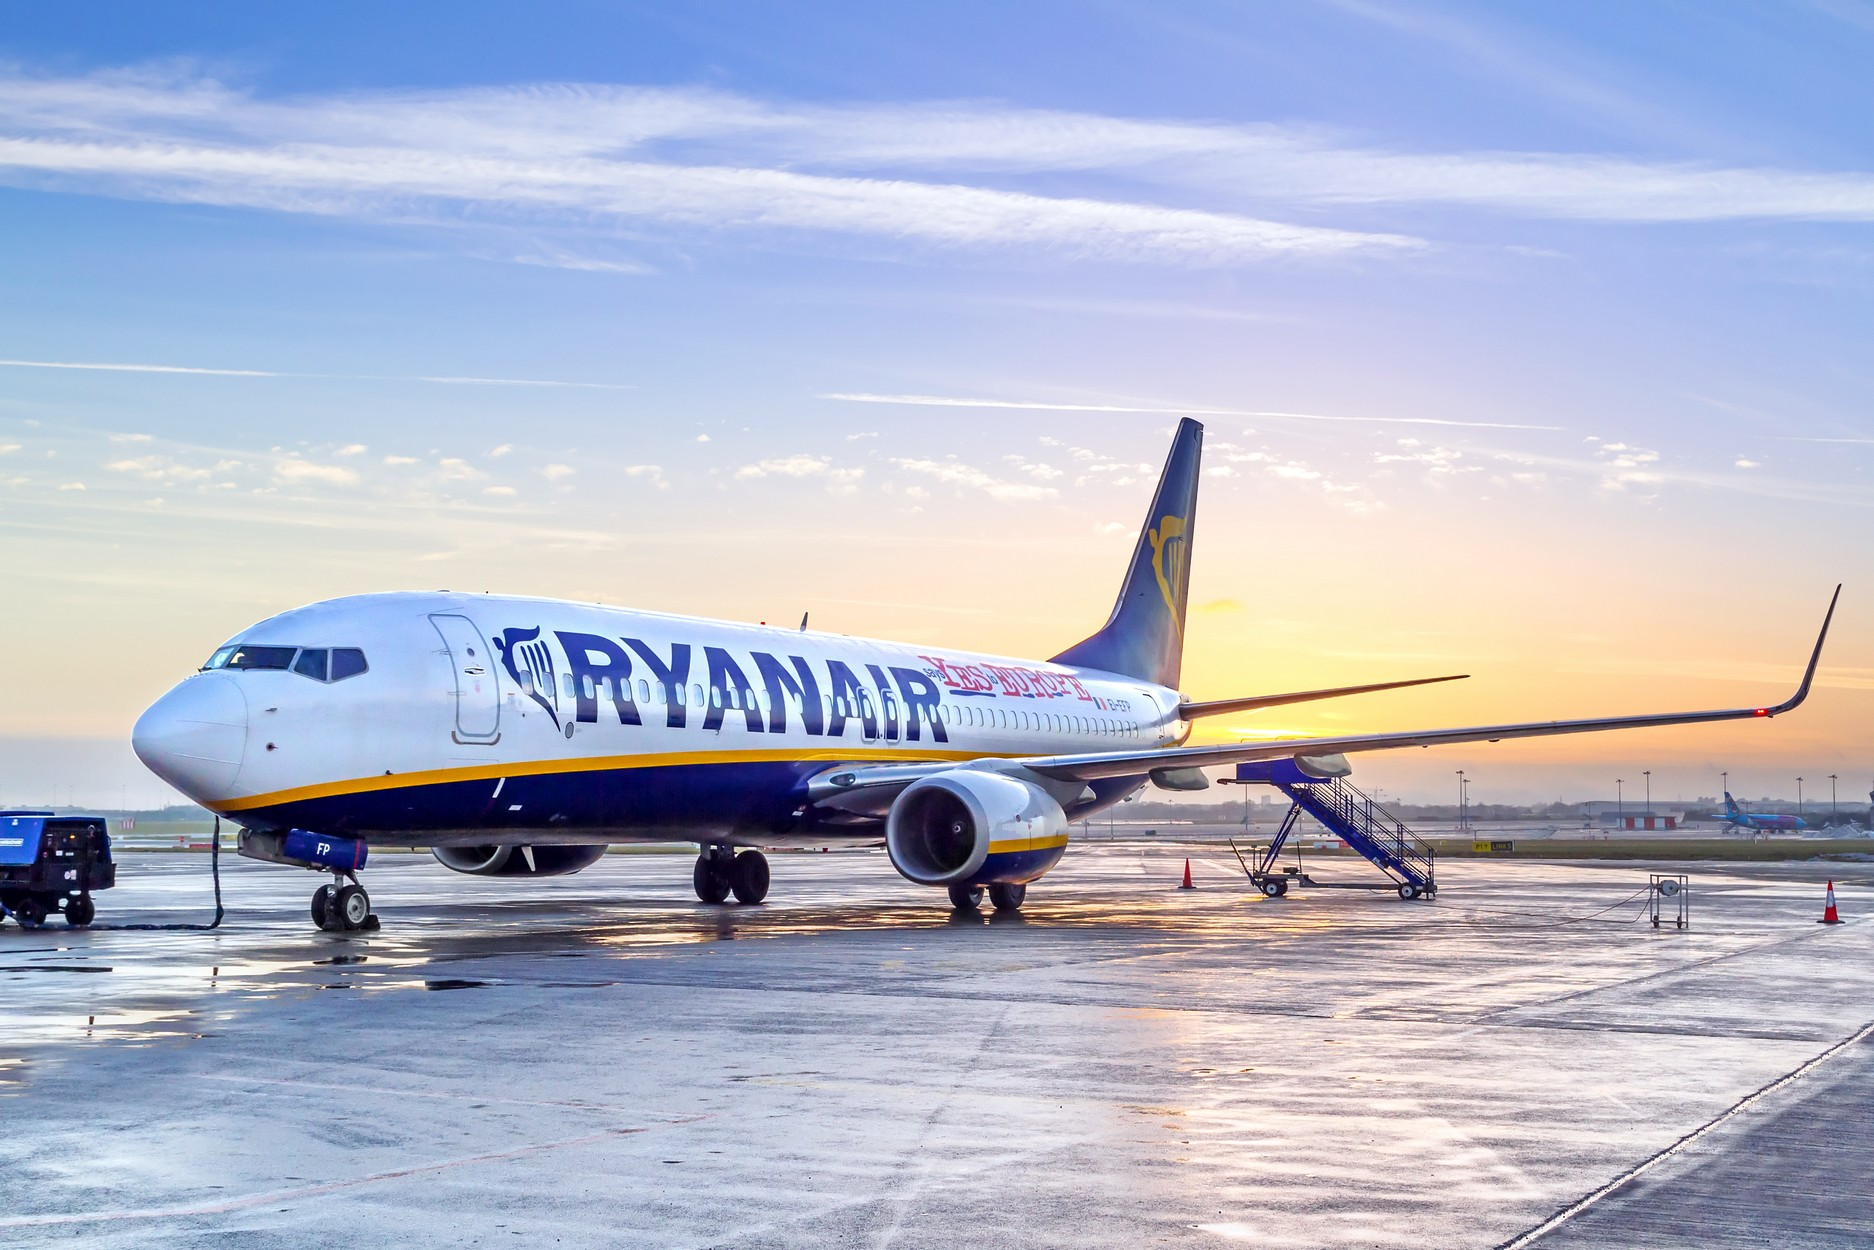 Ryanair, Jacobs, environment, greenest, marketing, load factor, low-cost, airline, air travel, flight, full